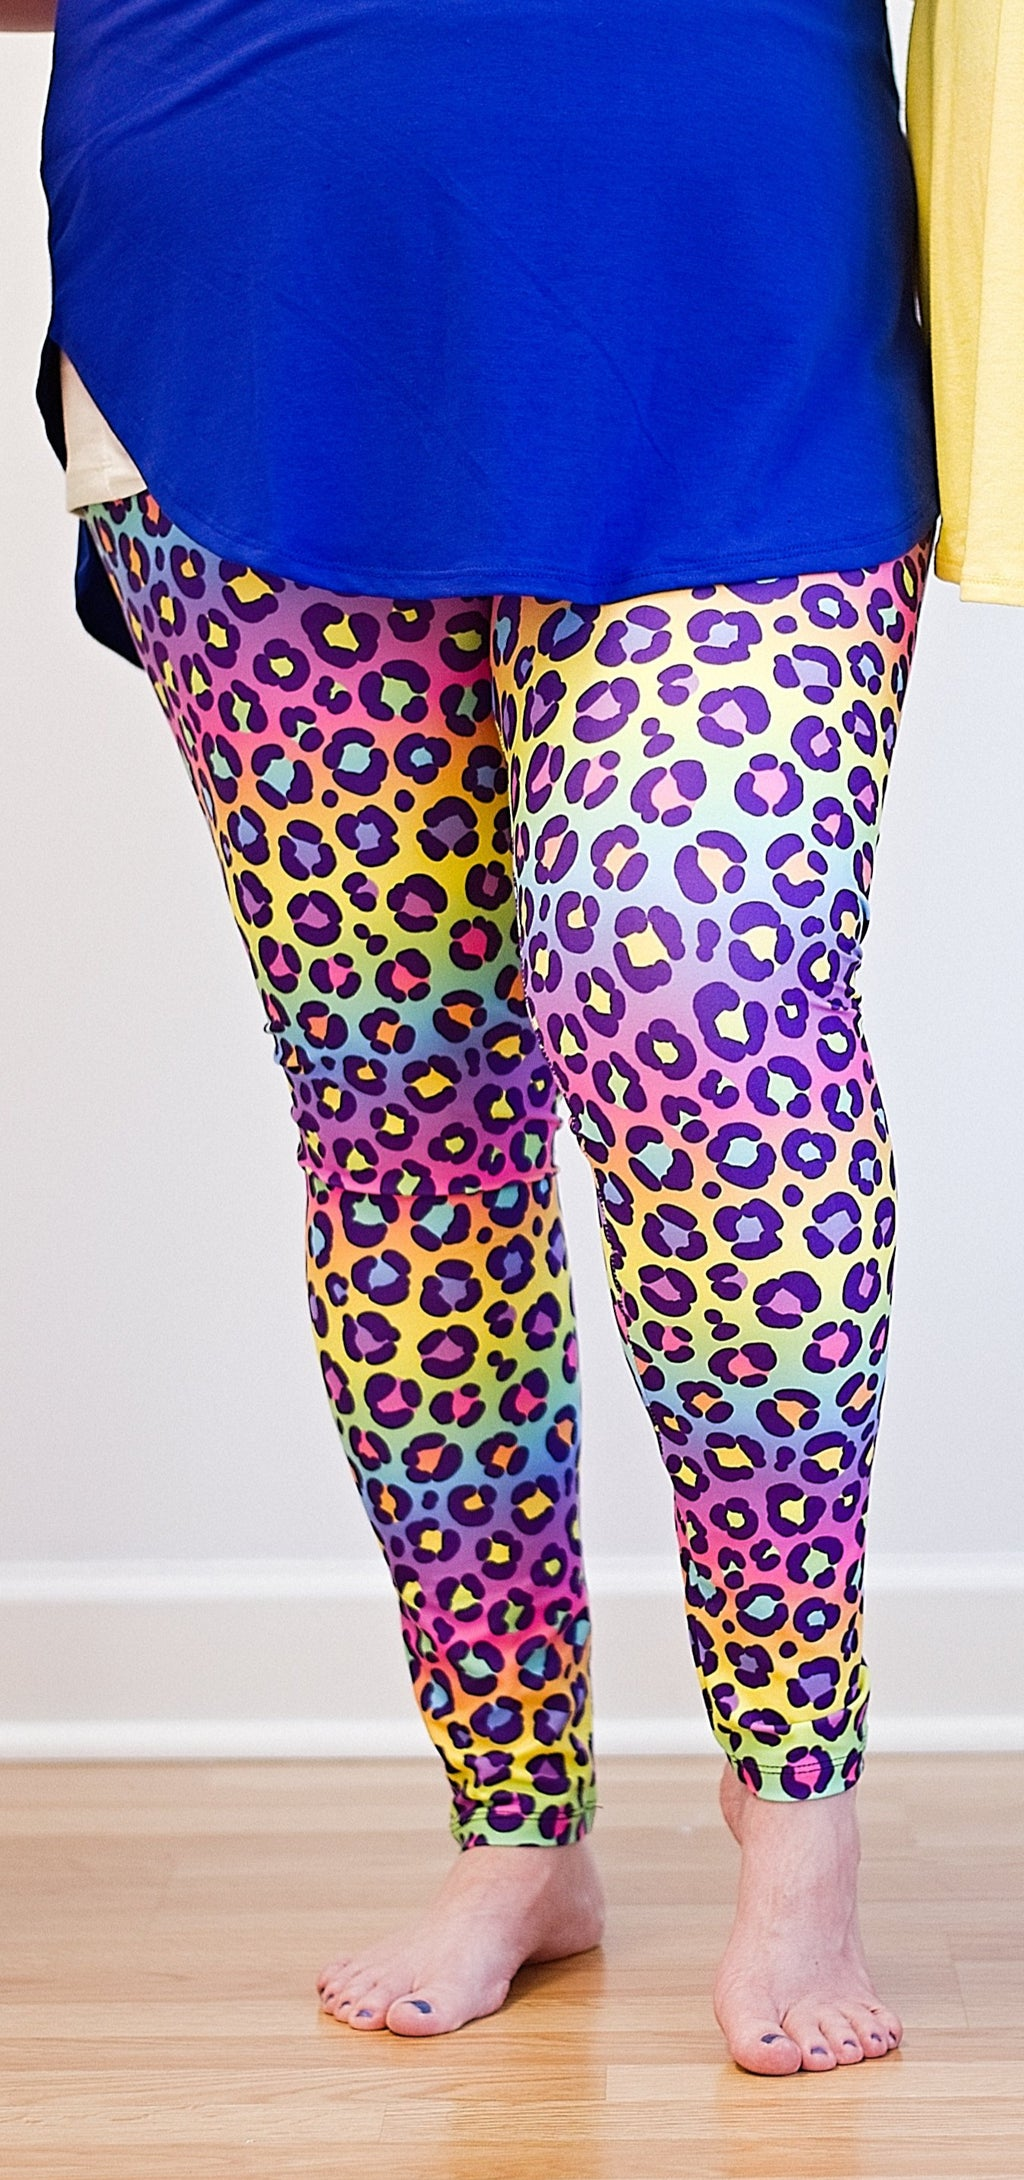 2Eighteen 'Rainbow Cheeta' Legging